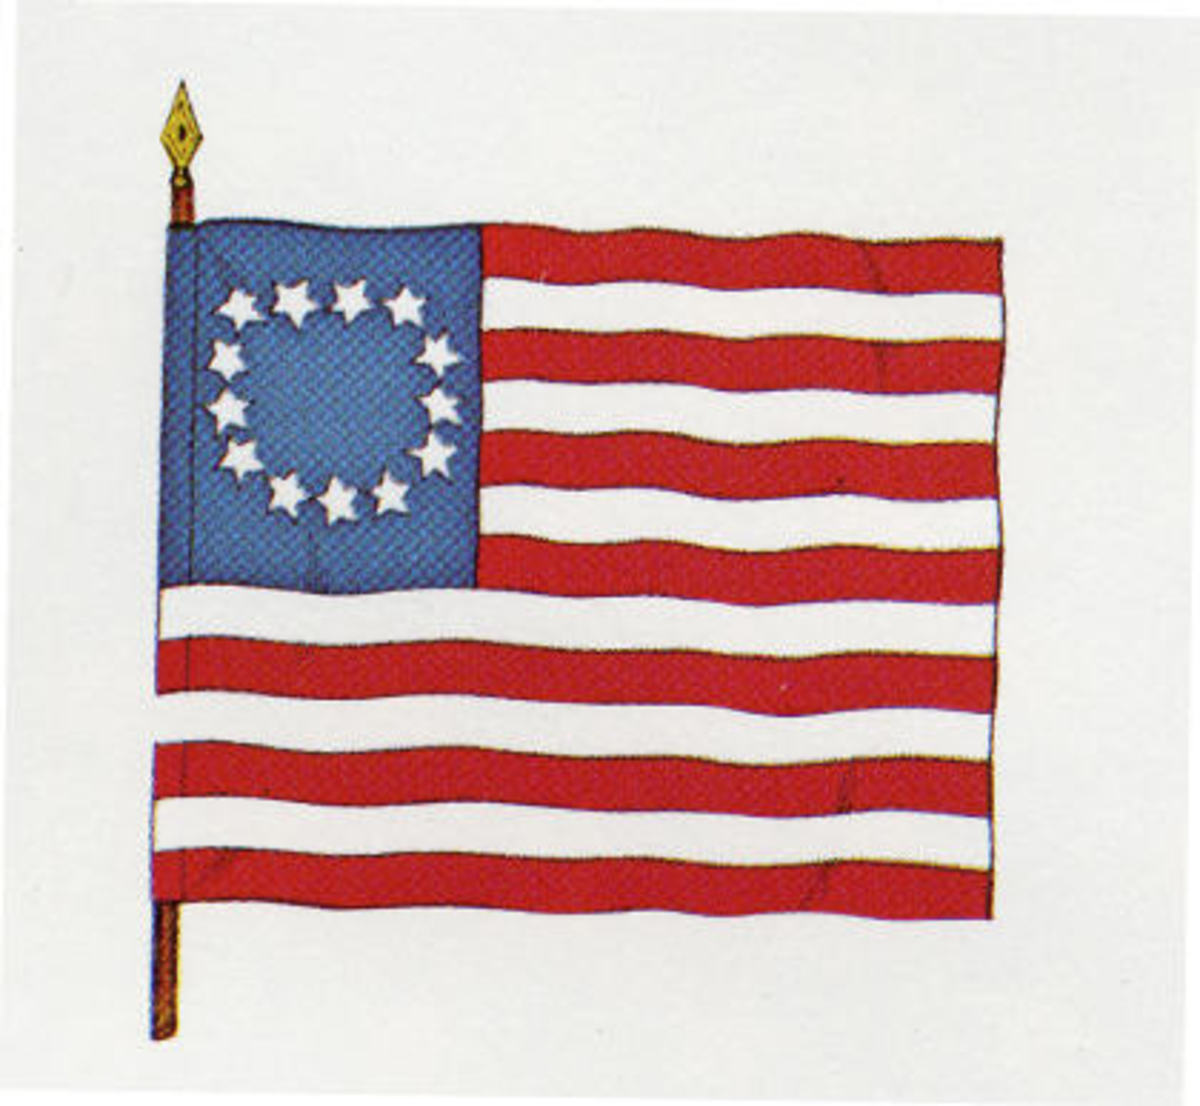 Betsy Ross Flag, used only in New York